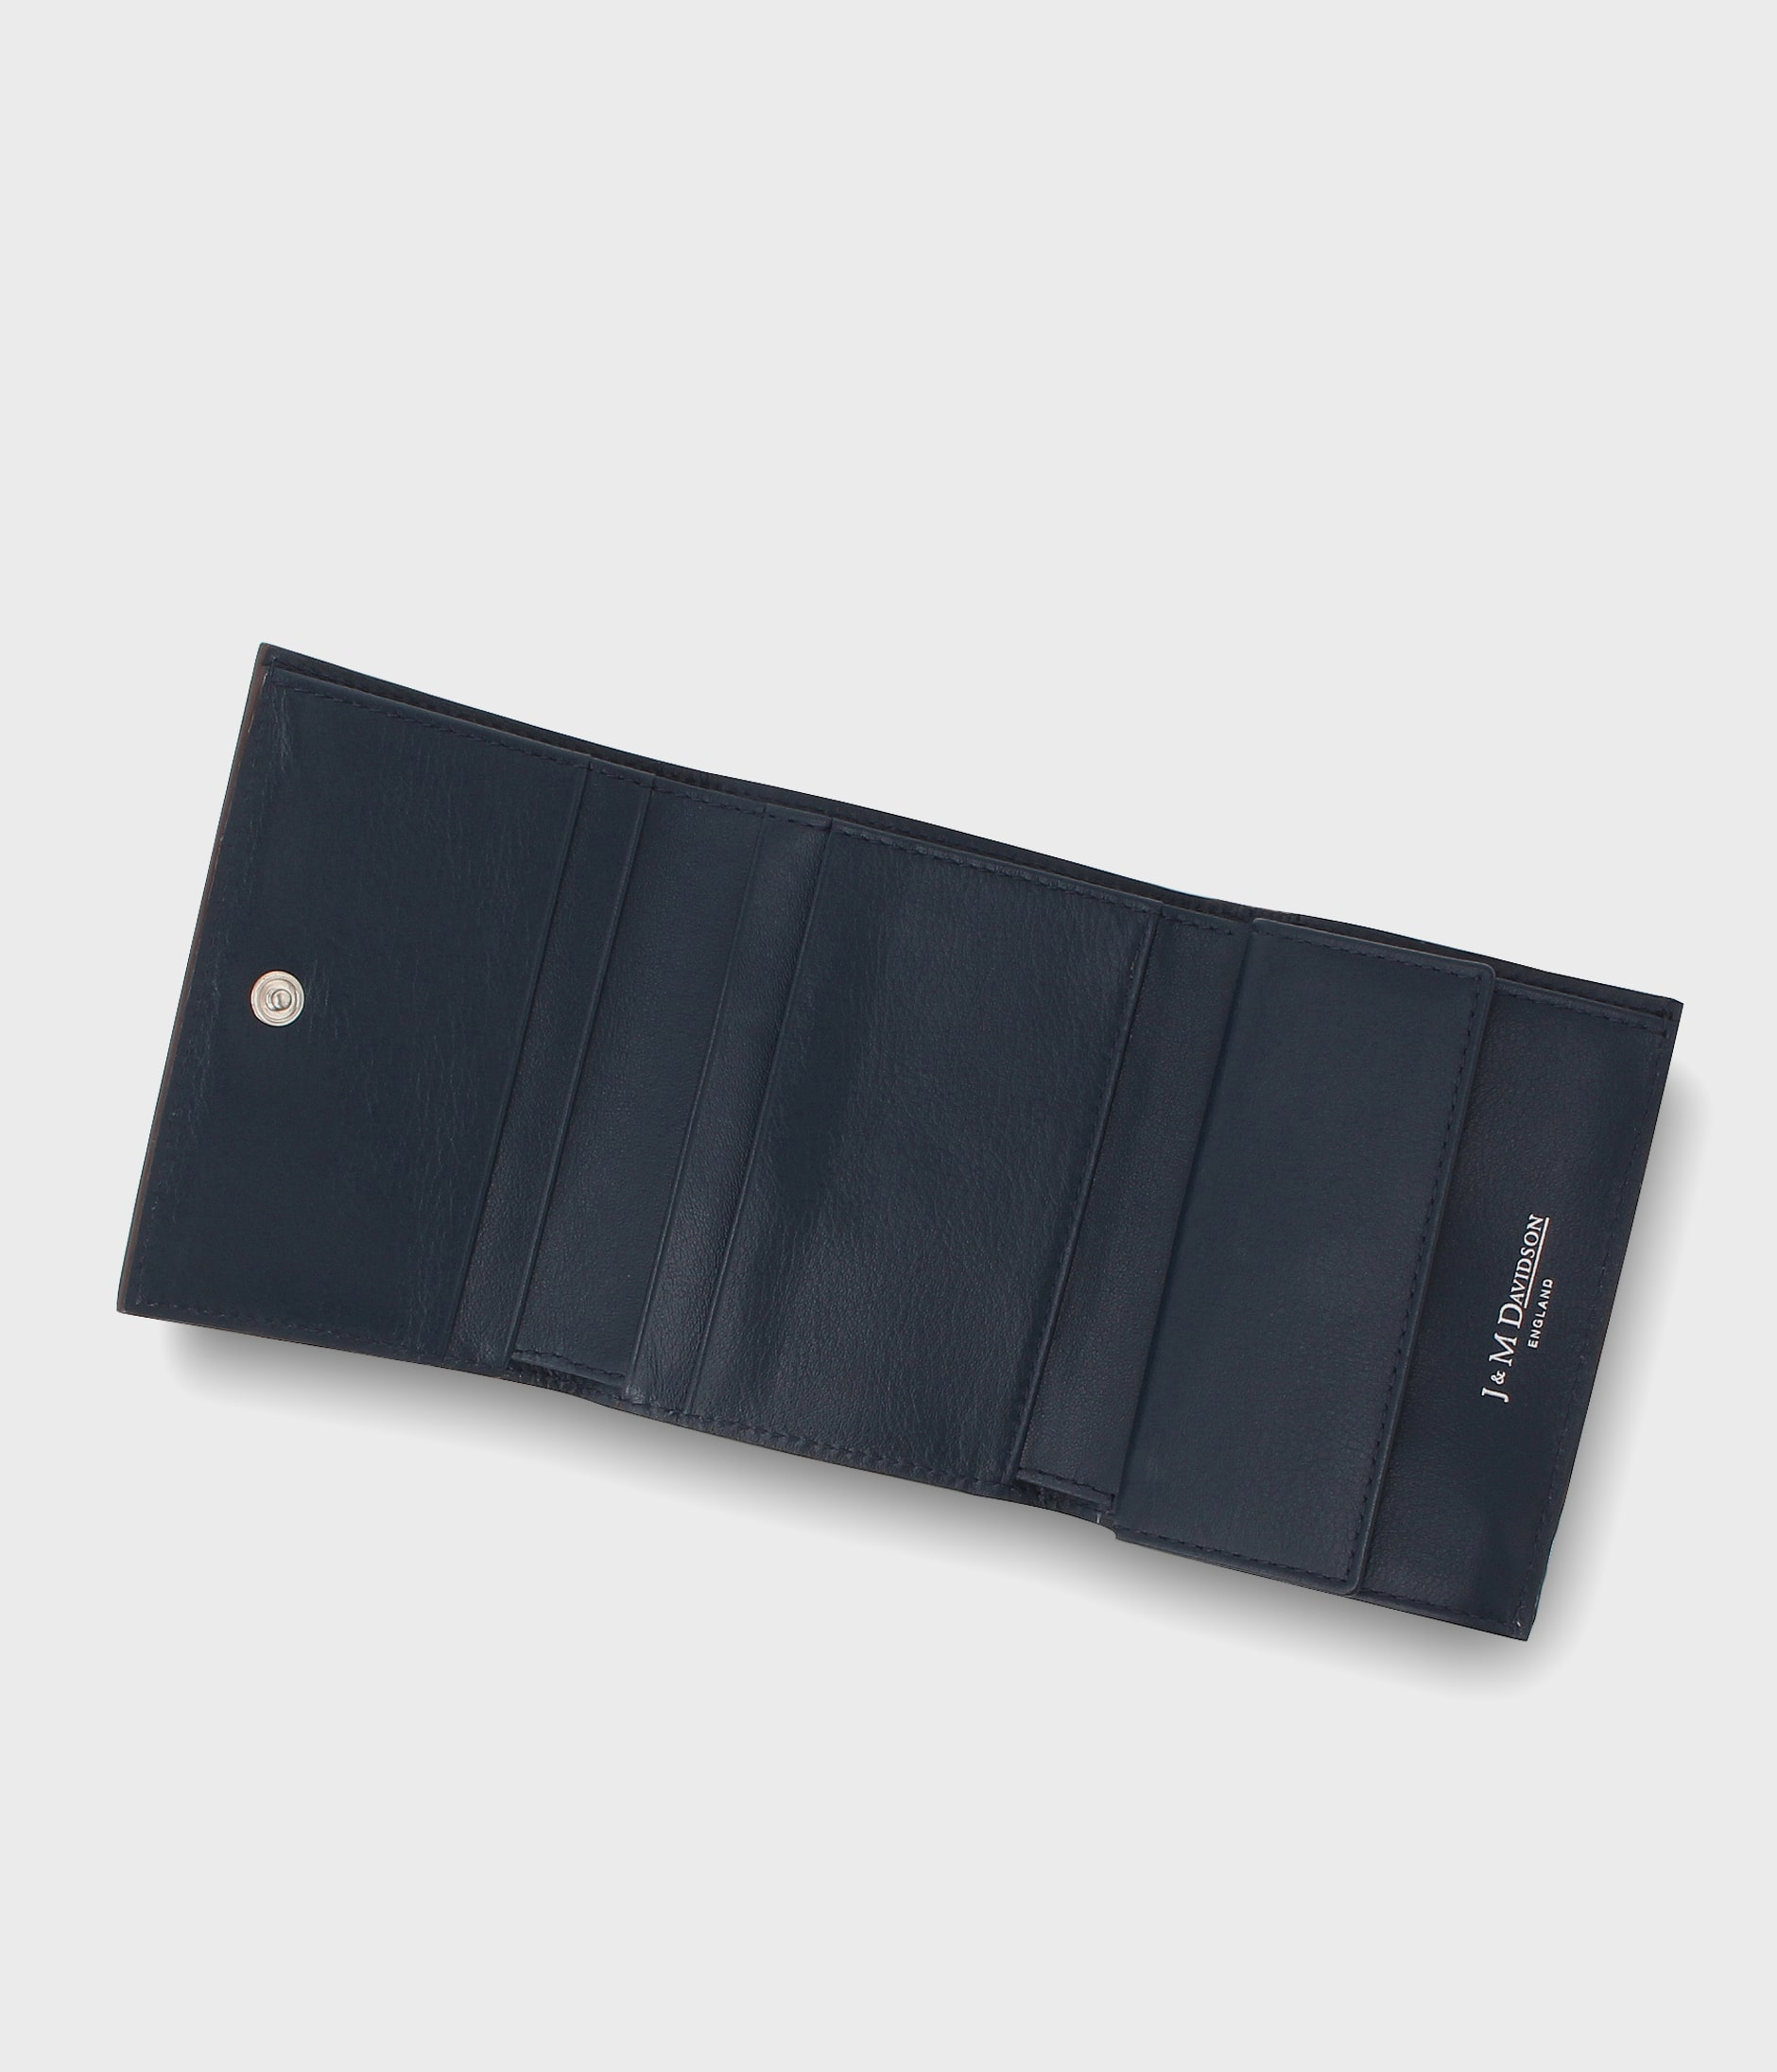 SMALL FOLDED WALLET WITH STUDS 詳細画像 NAVY 8